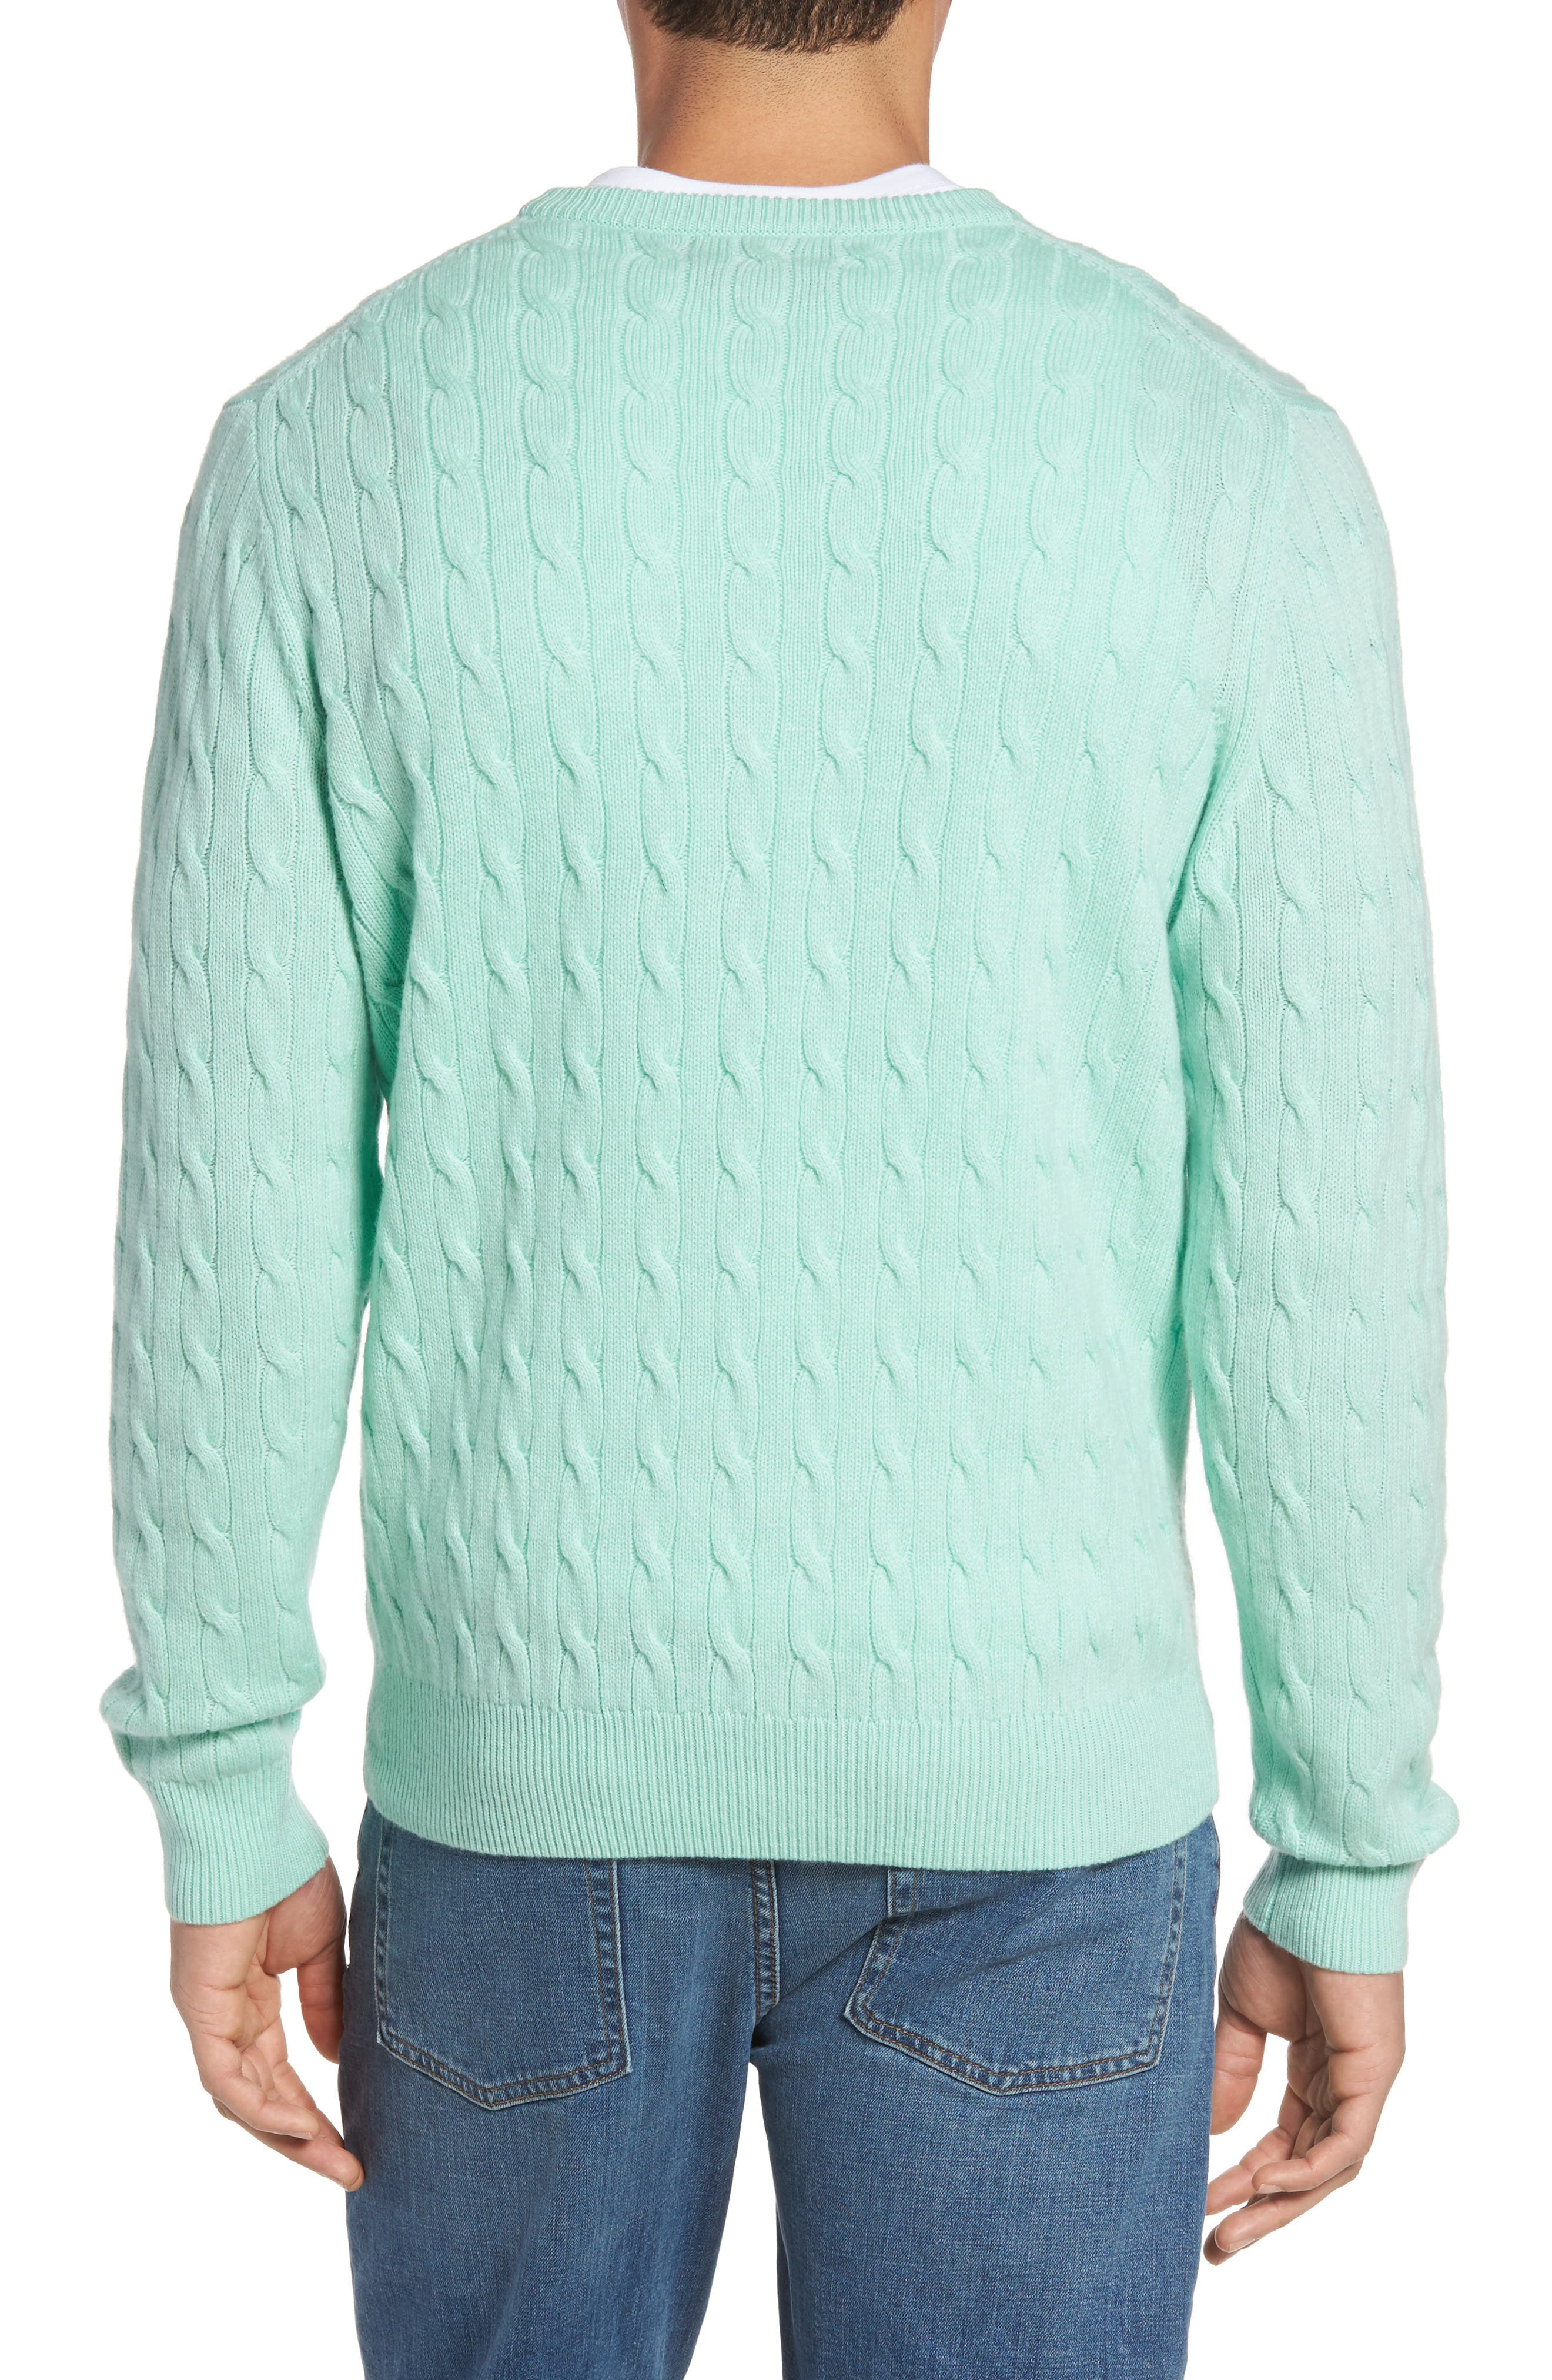 Wool & Cashmere Cable Knit Sweater,                             Alternate thumbnail 2, color,                             301